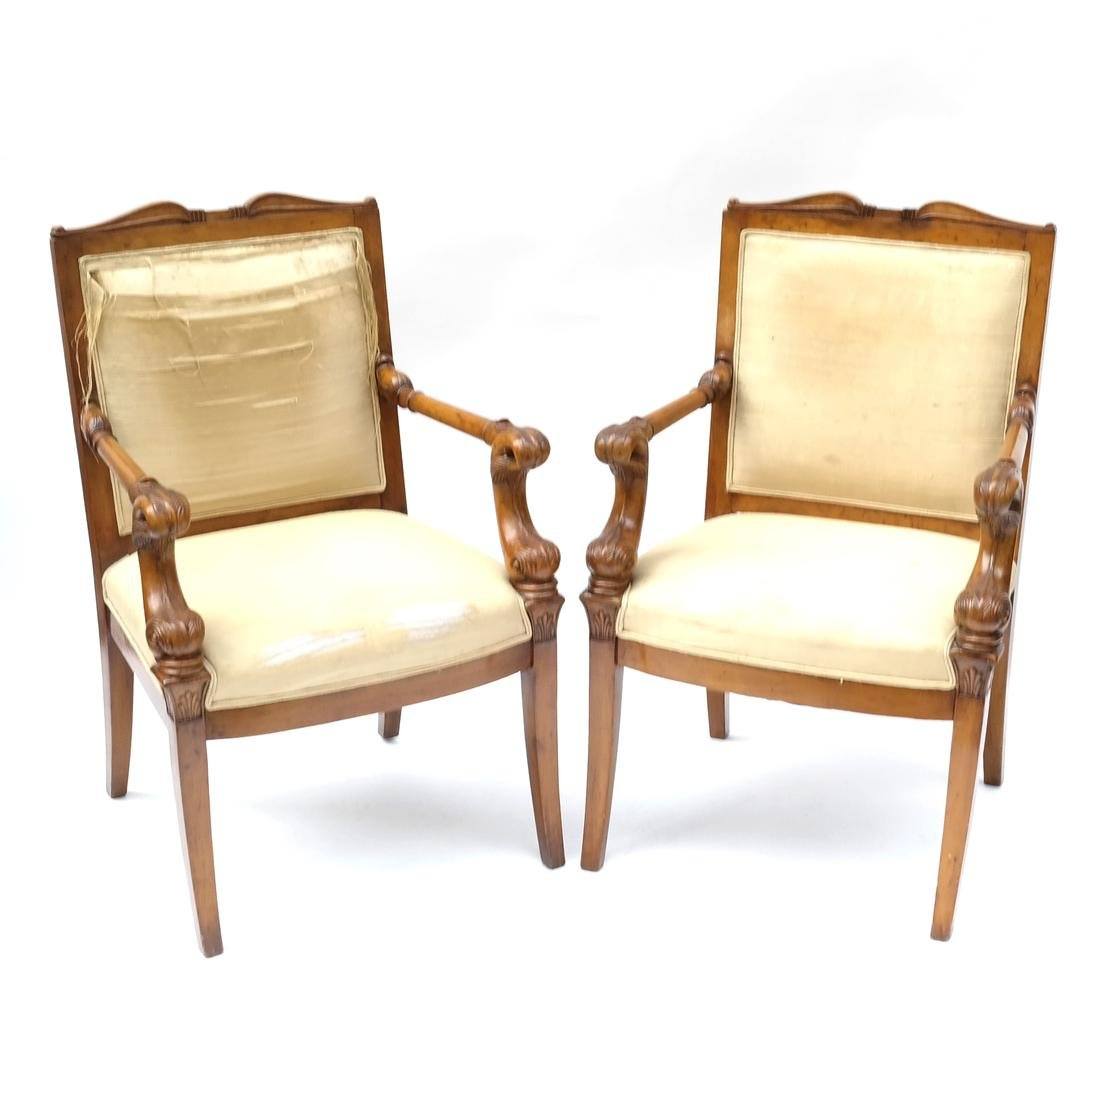 Pair of Regency-Style Dolphin-Form Chairs